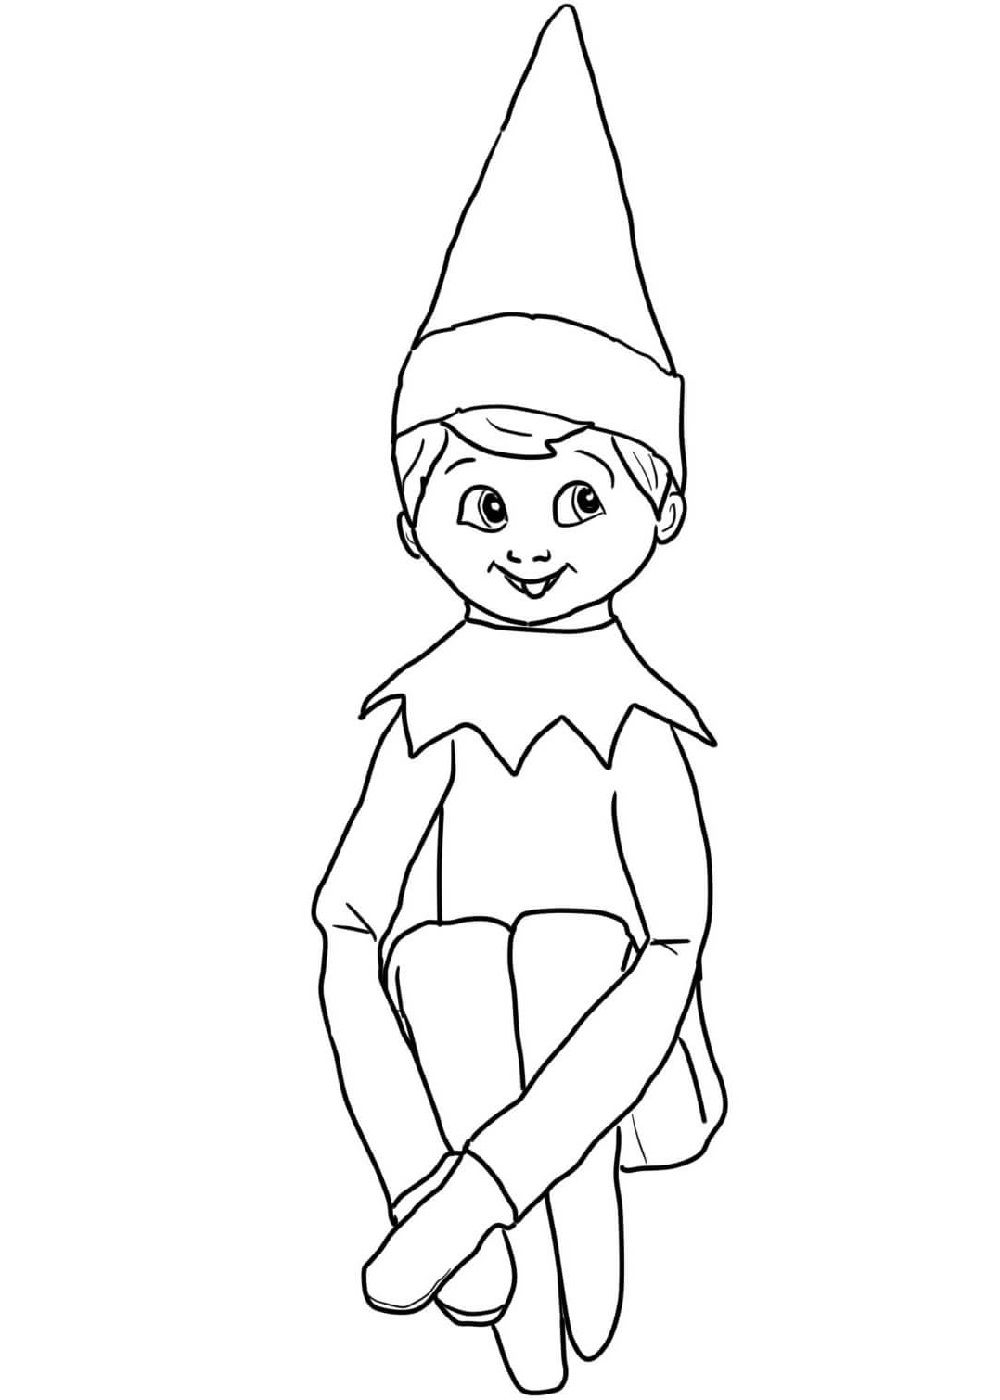 elf on the shelf coloring book elf on the shelf coloring pages 101 coloring book the on coloring shelf elf